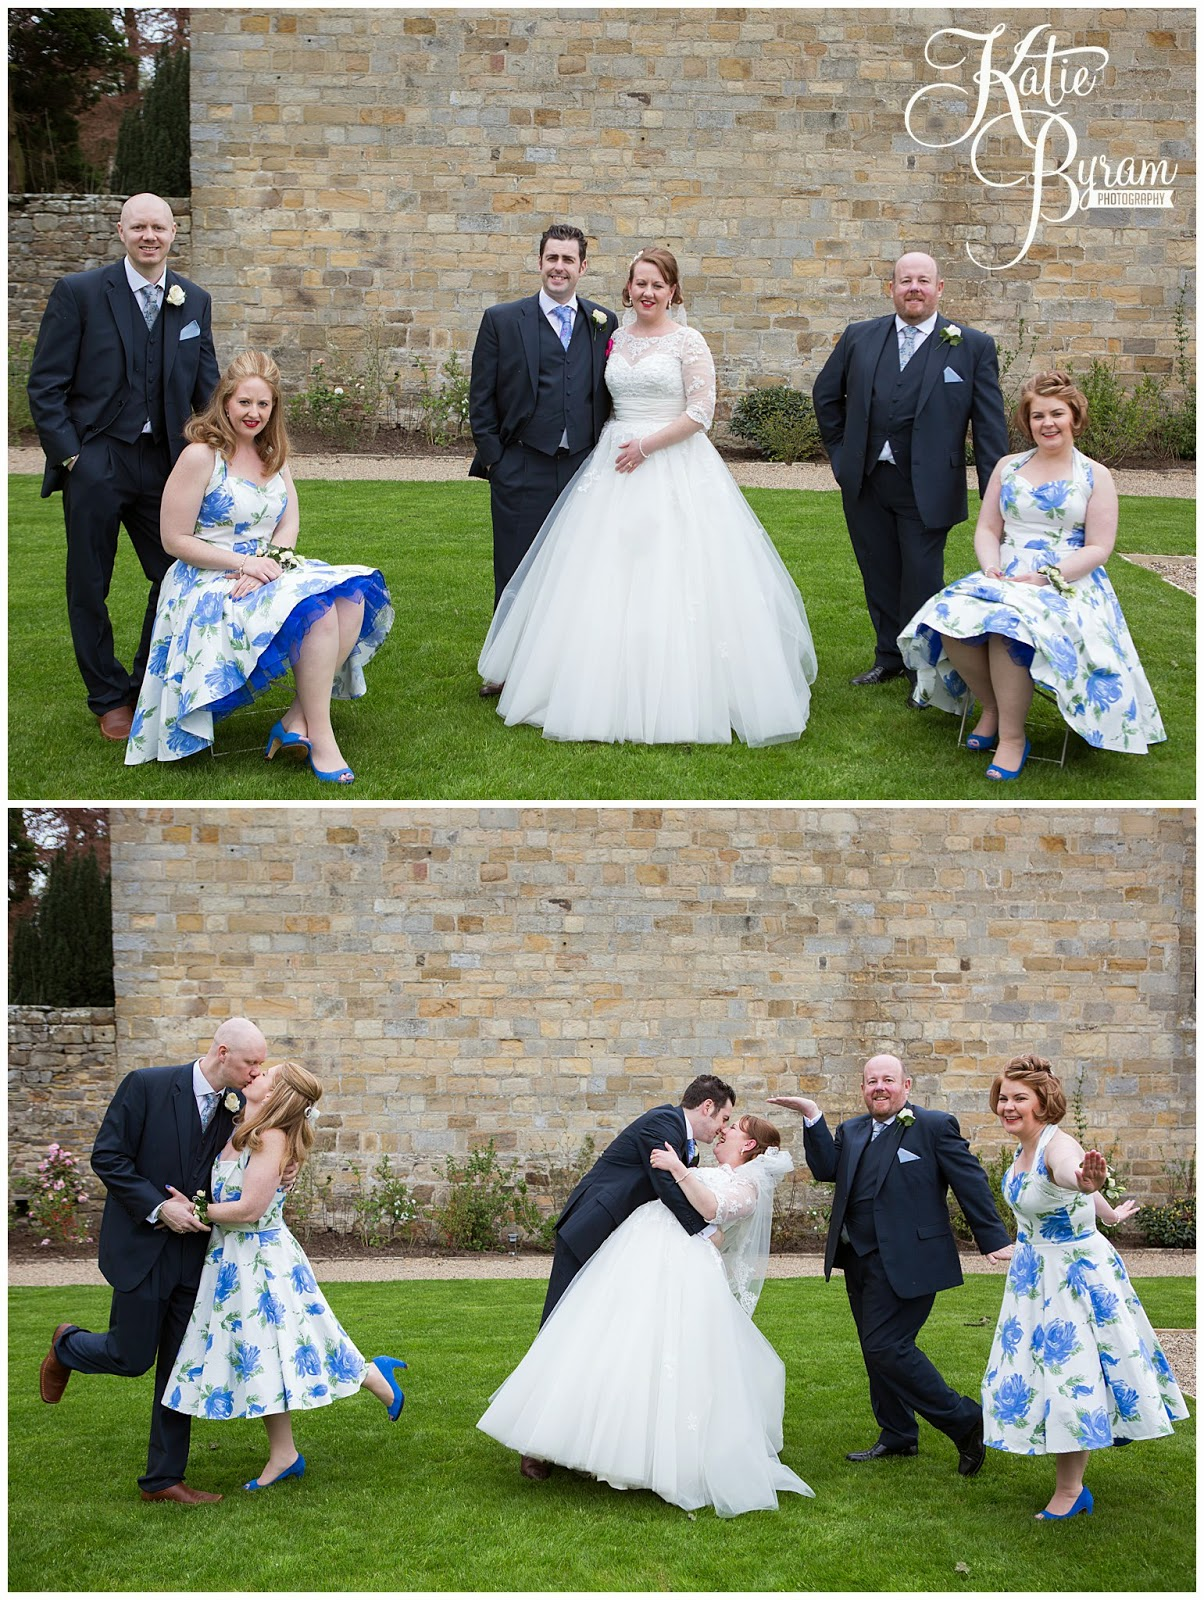 minsteracres wedding, lord crewe arms wedding, dog at wedding, scoops and smiles, katie byram photography, ice cream van hire newcastle, newcastle wedding photography, relaxed wedding photography, quirky, 50's wedding, alternative wedding, irregular choice, wedding dress with sleeves